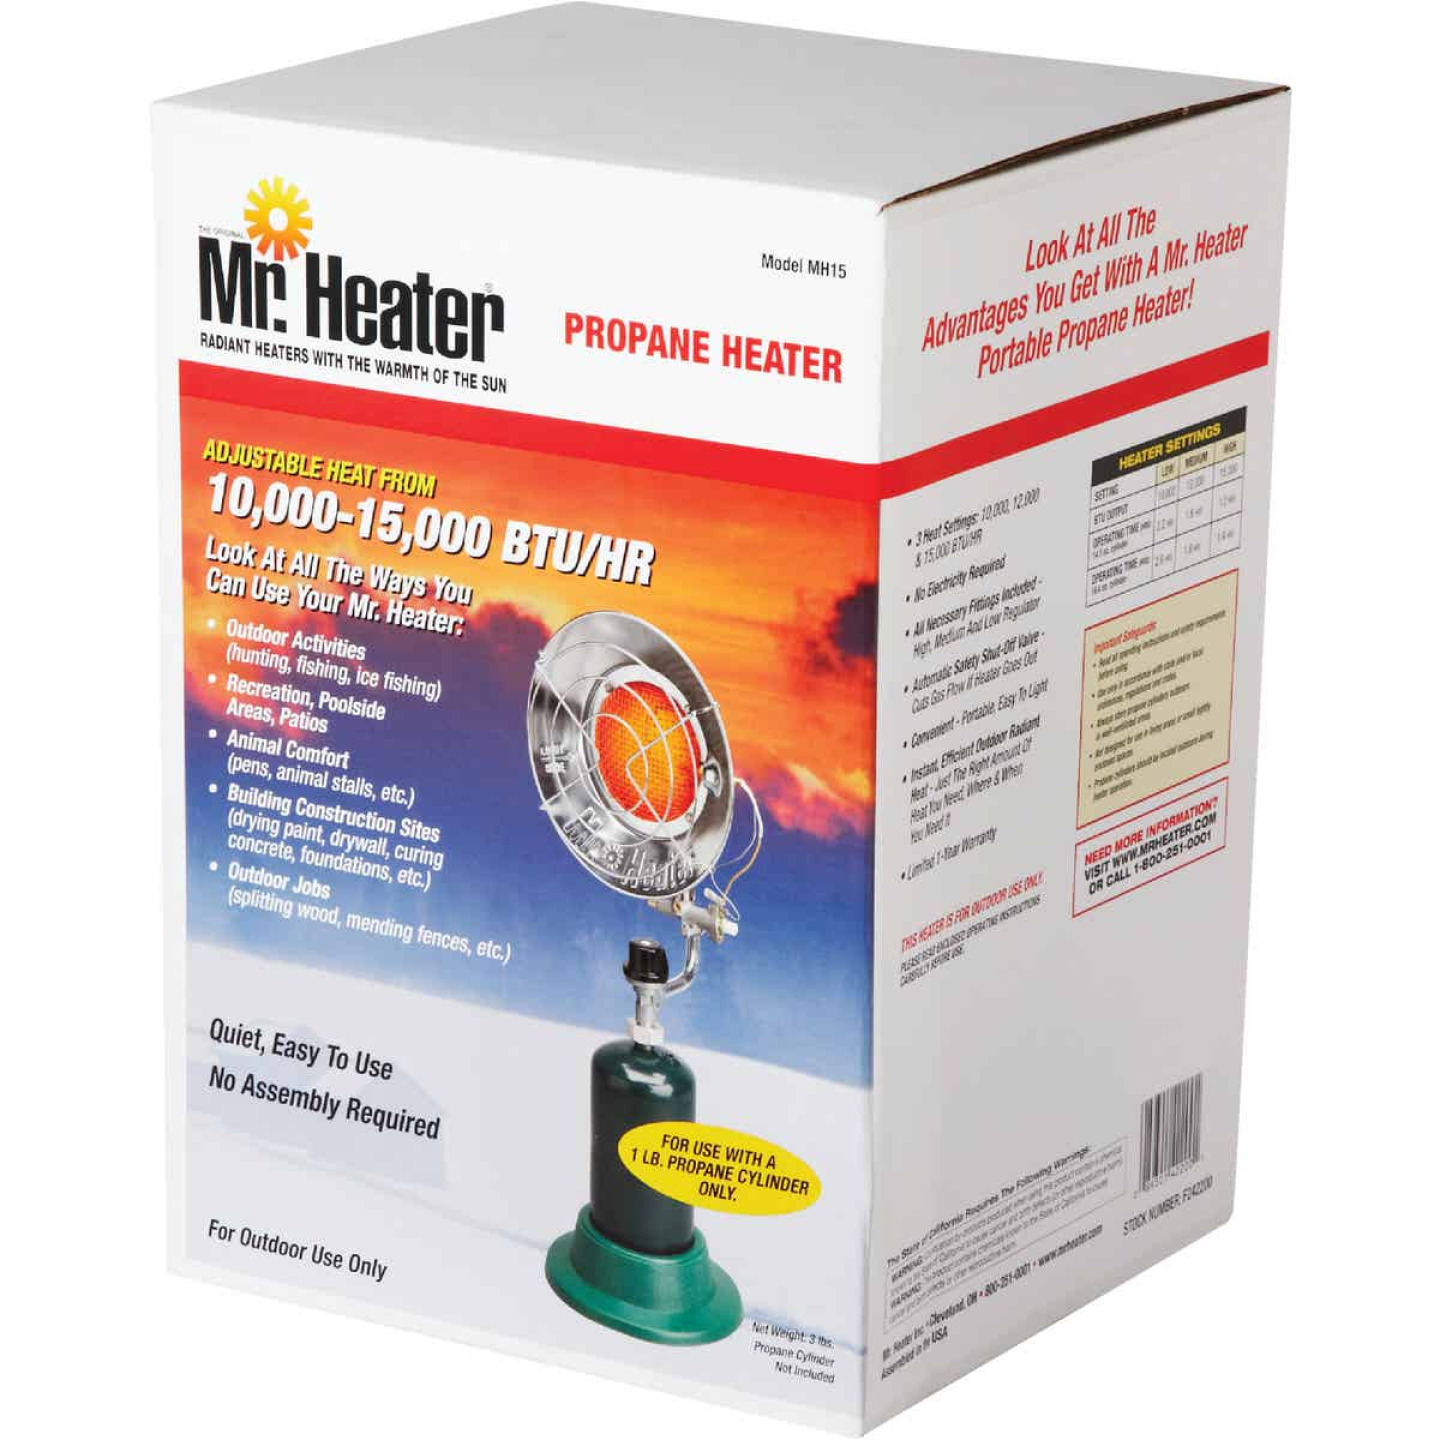 MR. HEATER 15,000 BTU Radiant Portable Tank Top Propane Heater Image 2